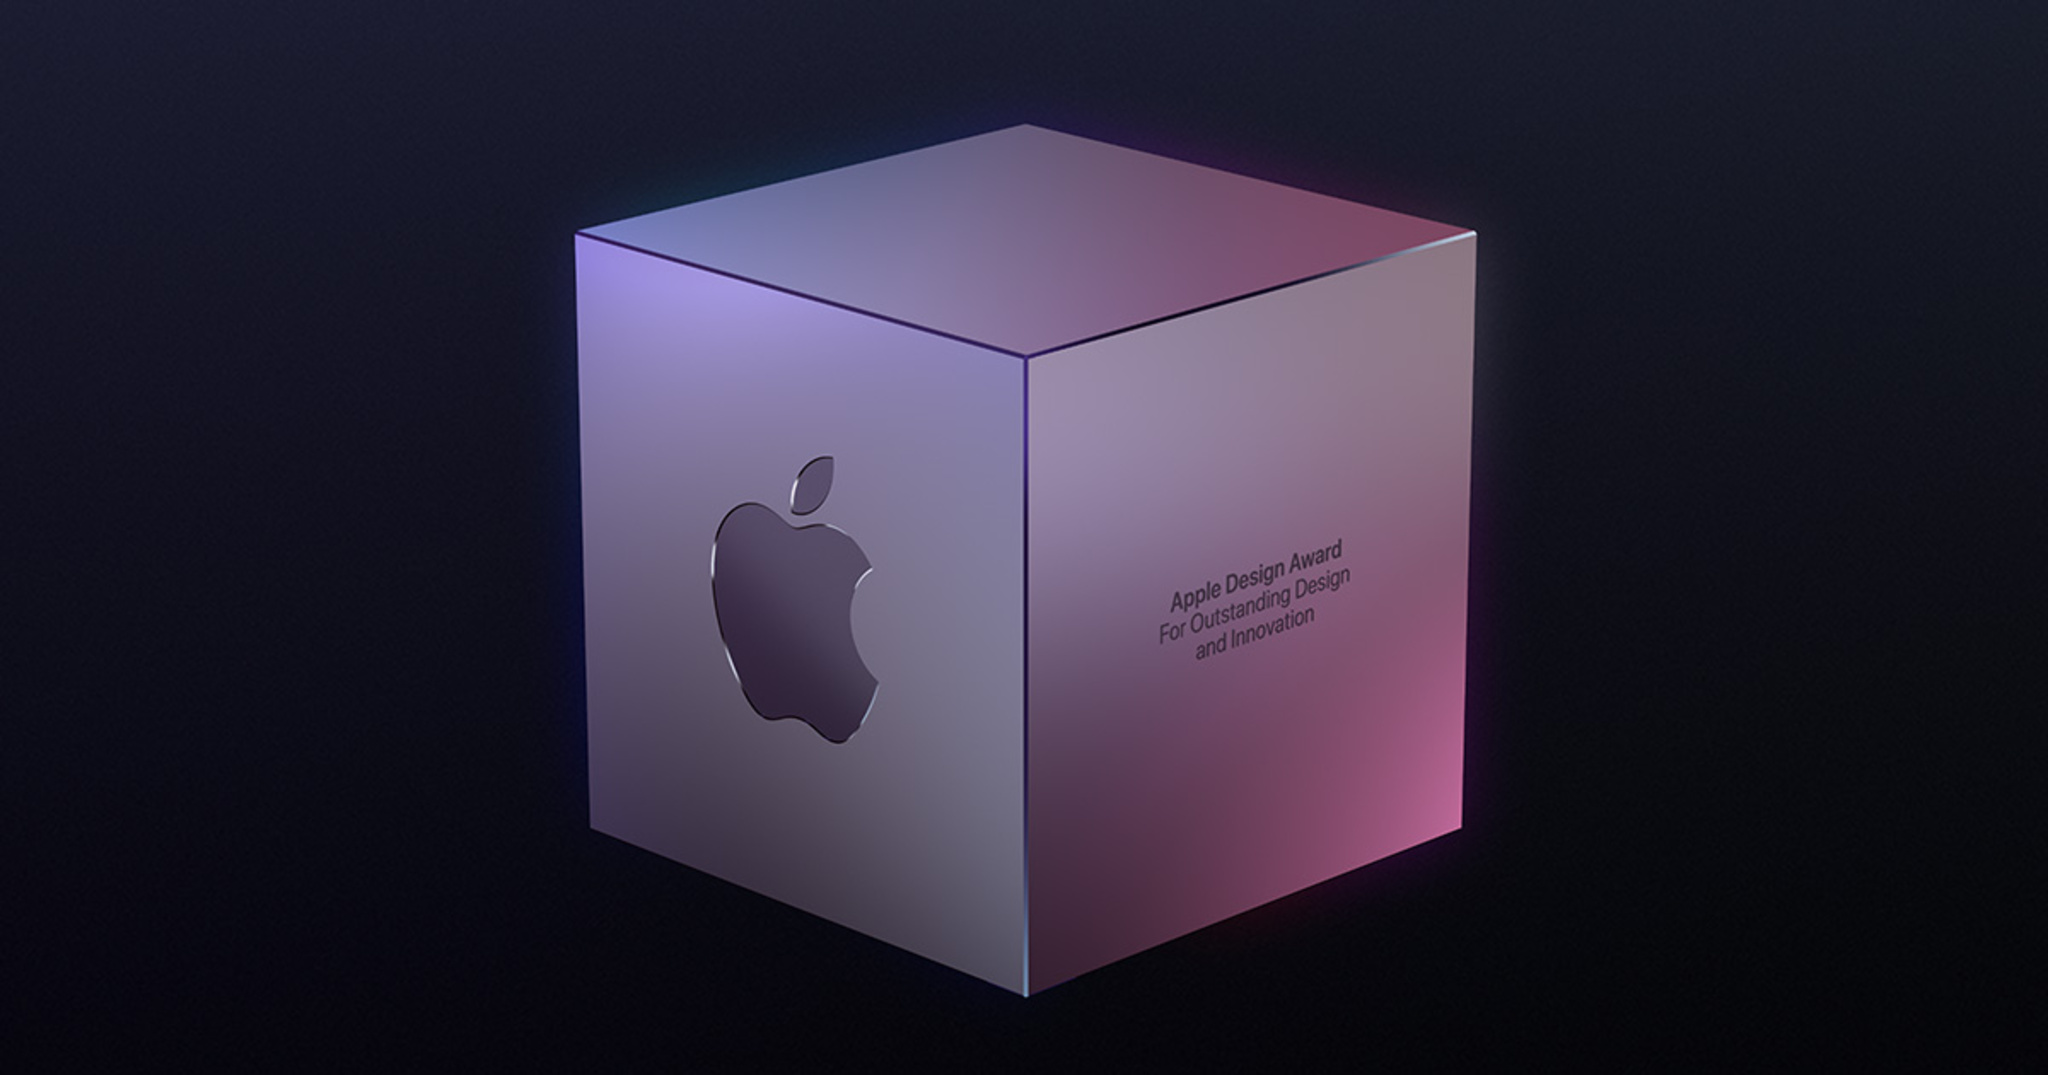 """A silver-colored metallic cube sits on a black background. It's engraved on the left side with the Apple logo and on the right side with the words """"Apple Design Award For Outstanding Design and Innovation""""."""